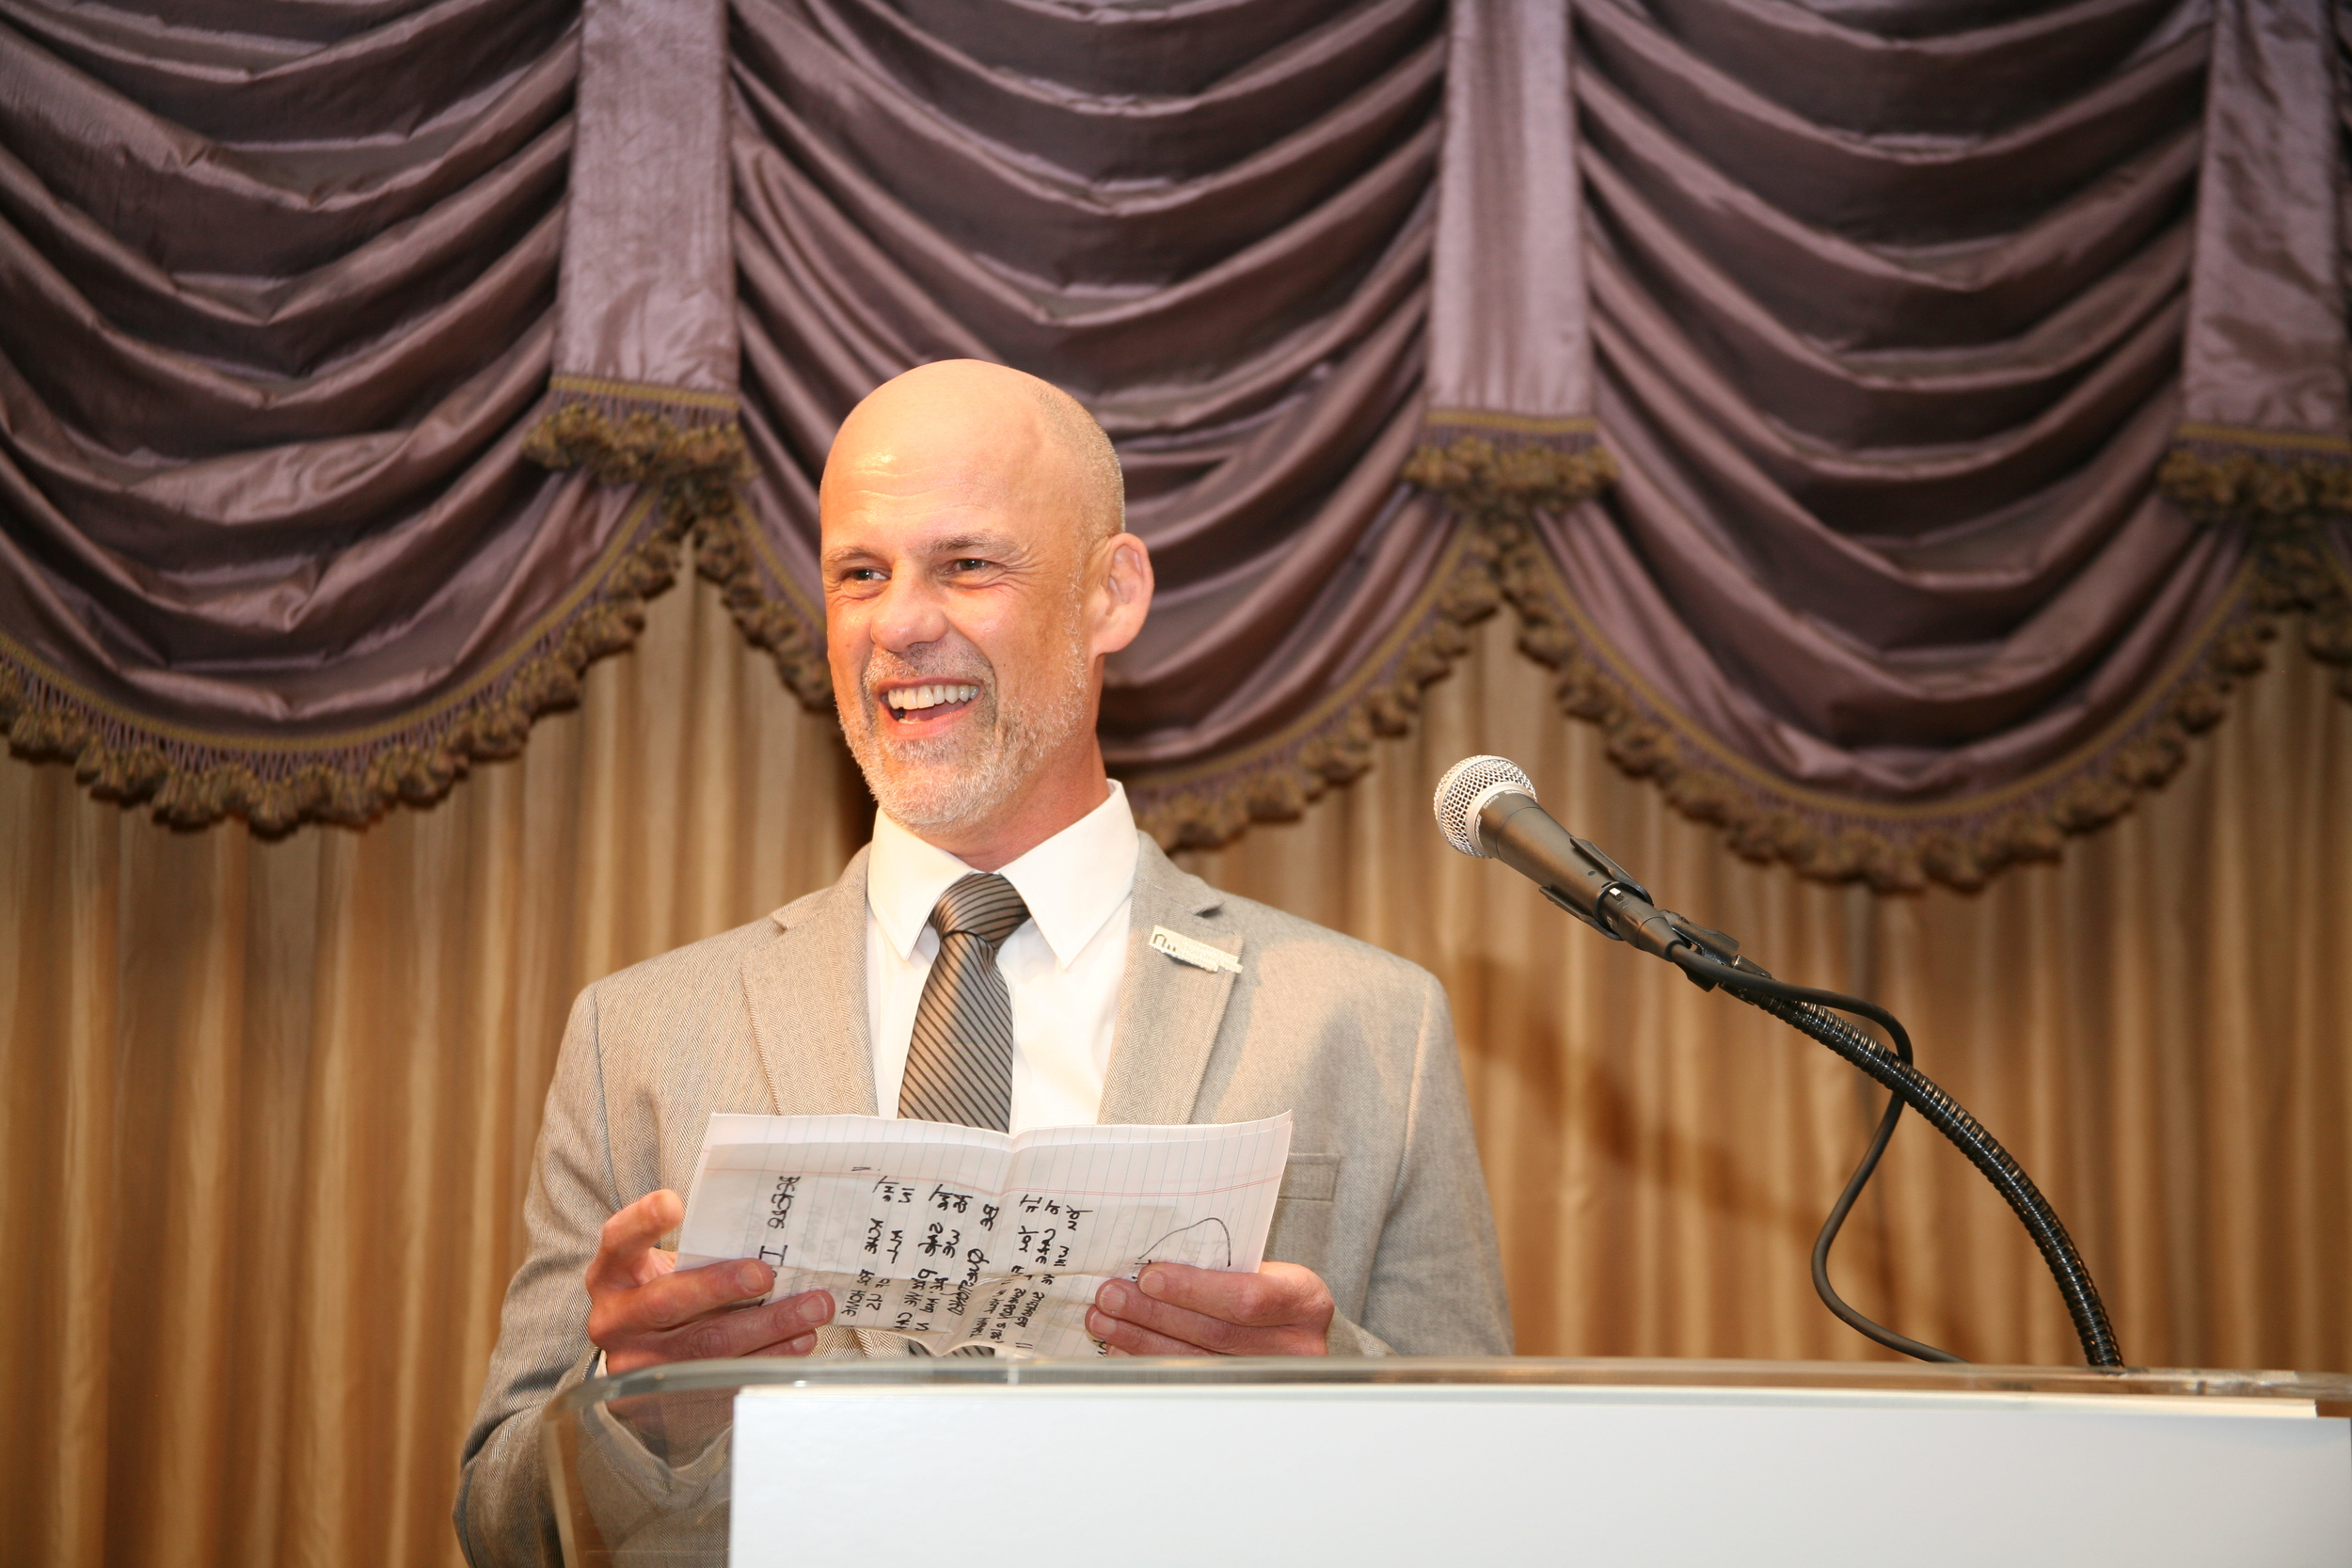 Phillip was honored in 2013 by the Alliance for Housing and Healing and received the Alliance Humanitarian Award.